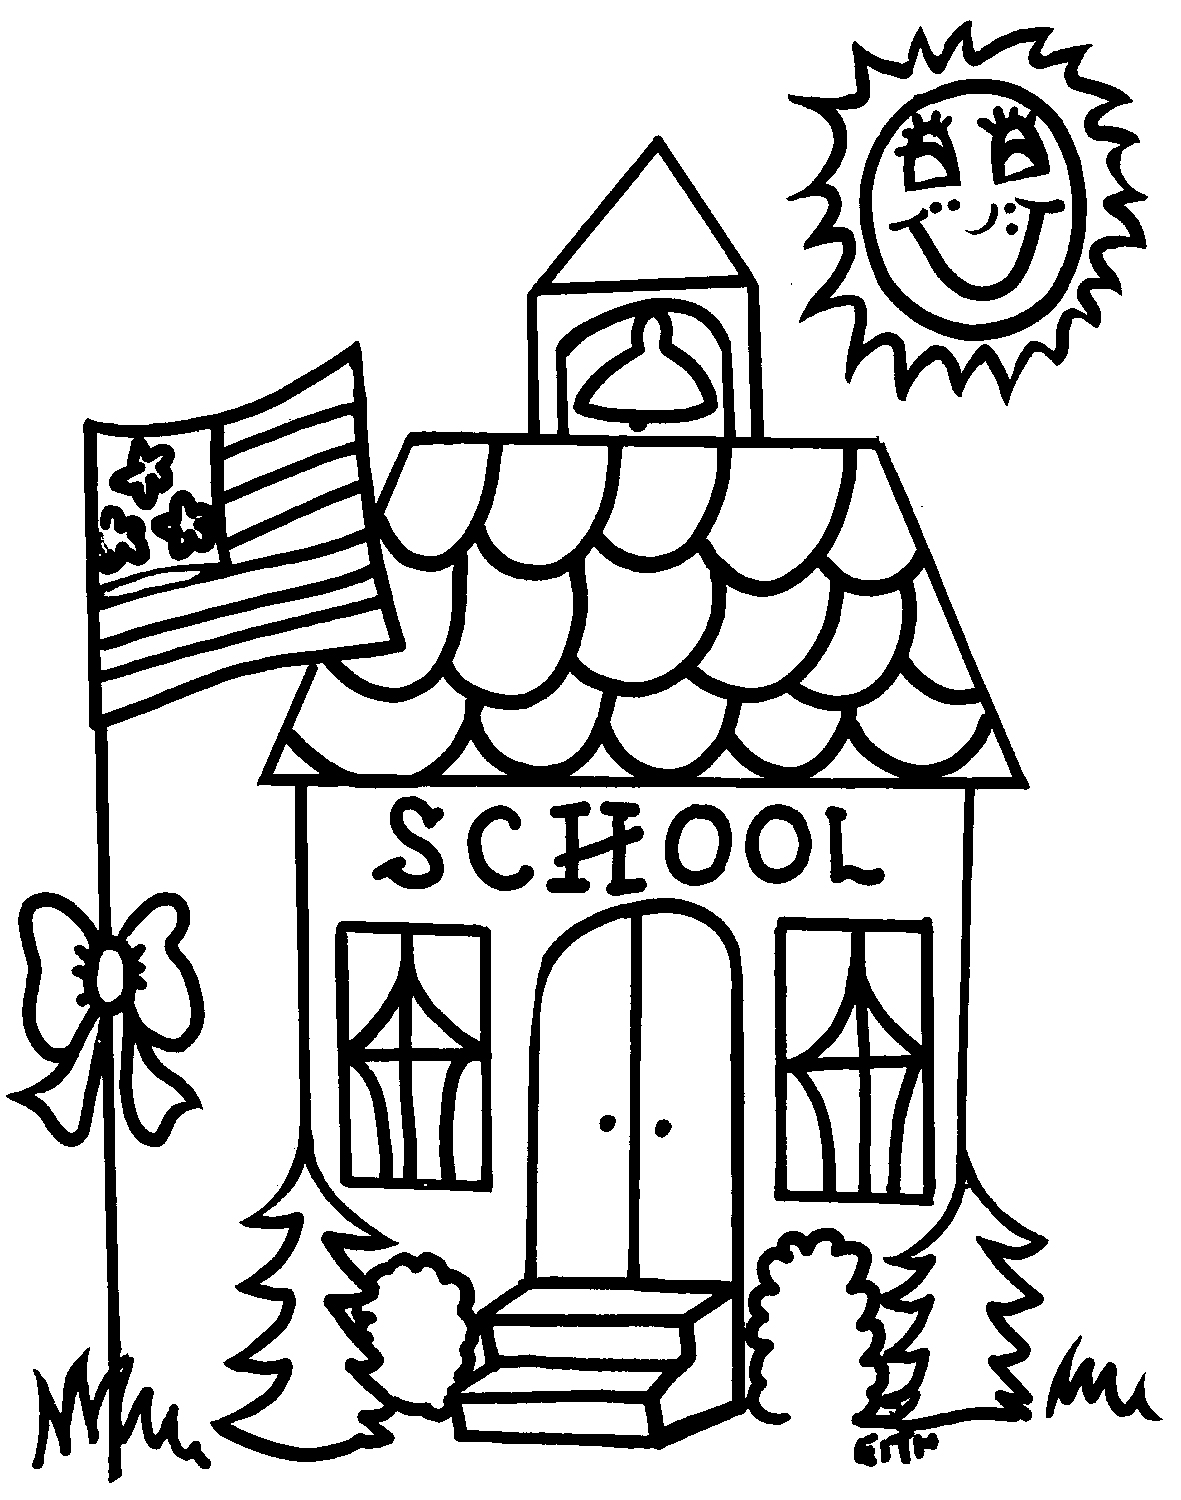 House outline download best. Free printable black and white clipart for teachers